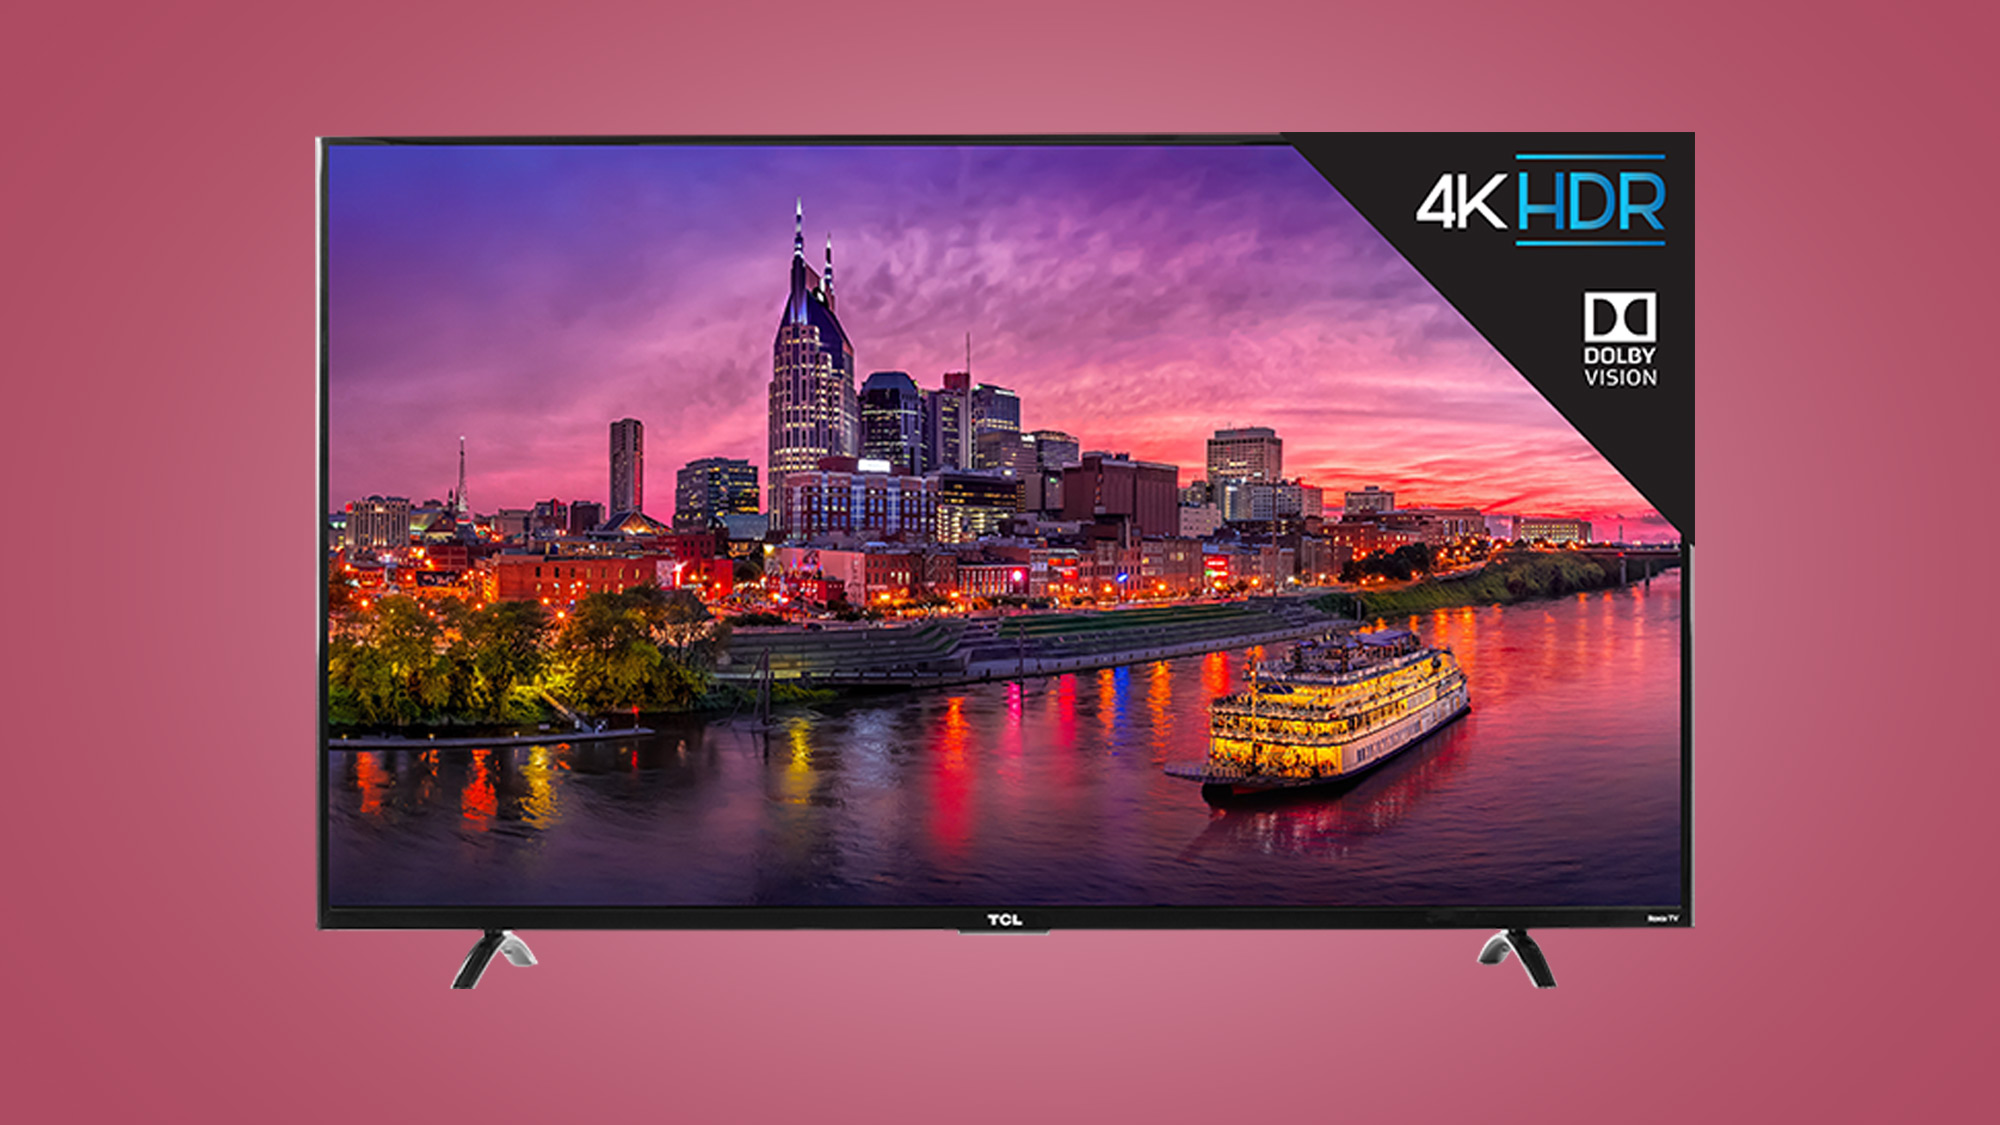 Best Smart Television Deals Christmas 2020 Best cheap TV deals: great 4K TV deals and sales in the US in